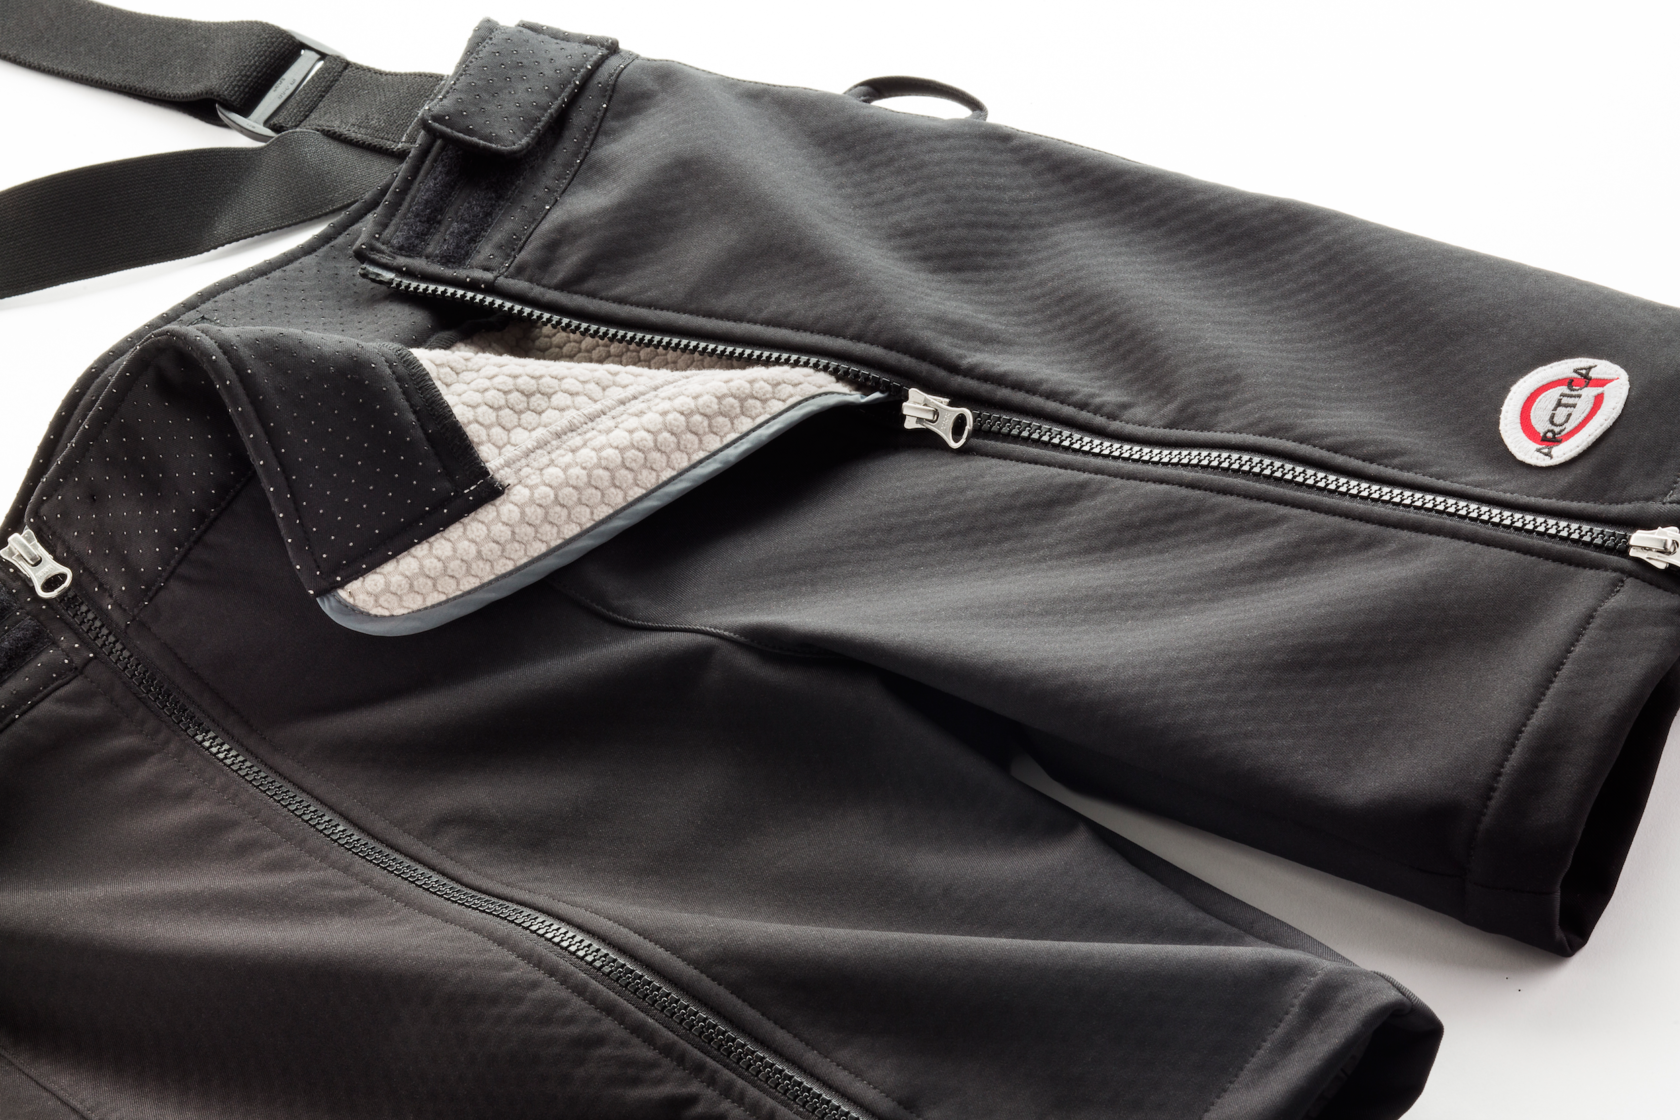 The Arctica Black Kat Training Shorts featuring our proprietary Flexshell softshell fabric